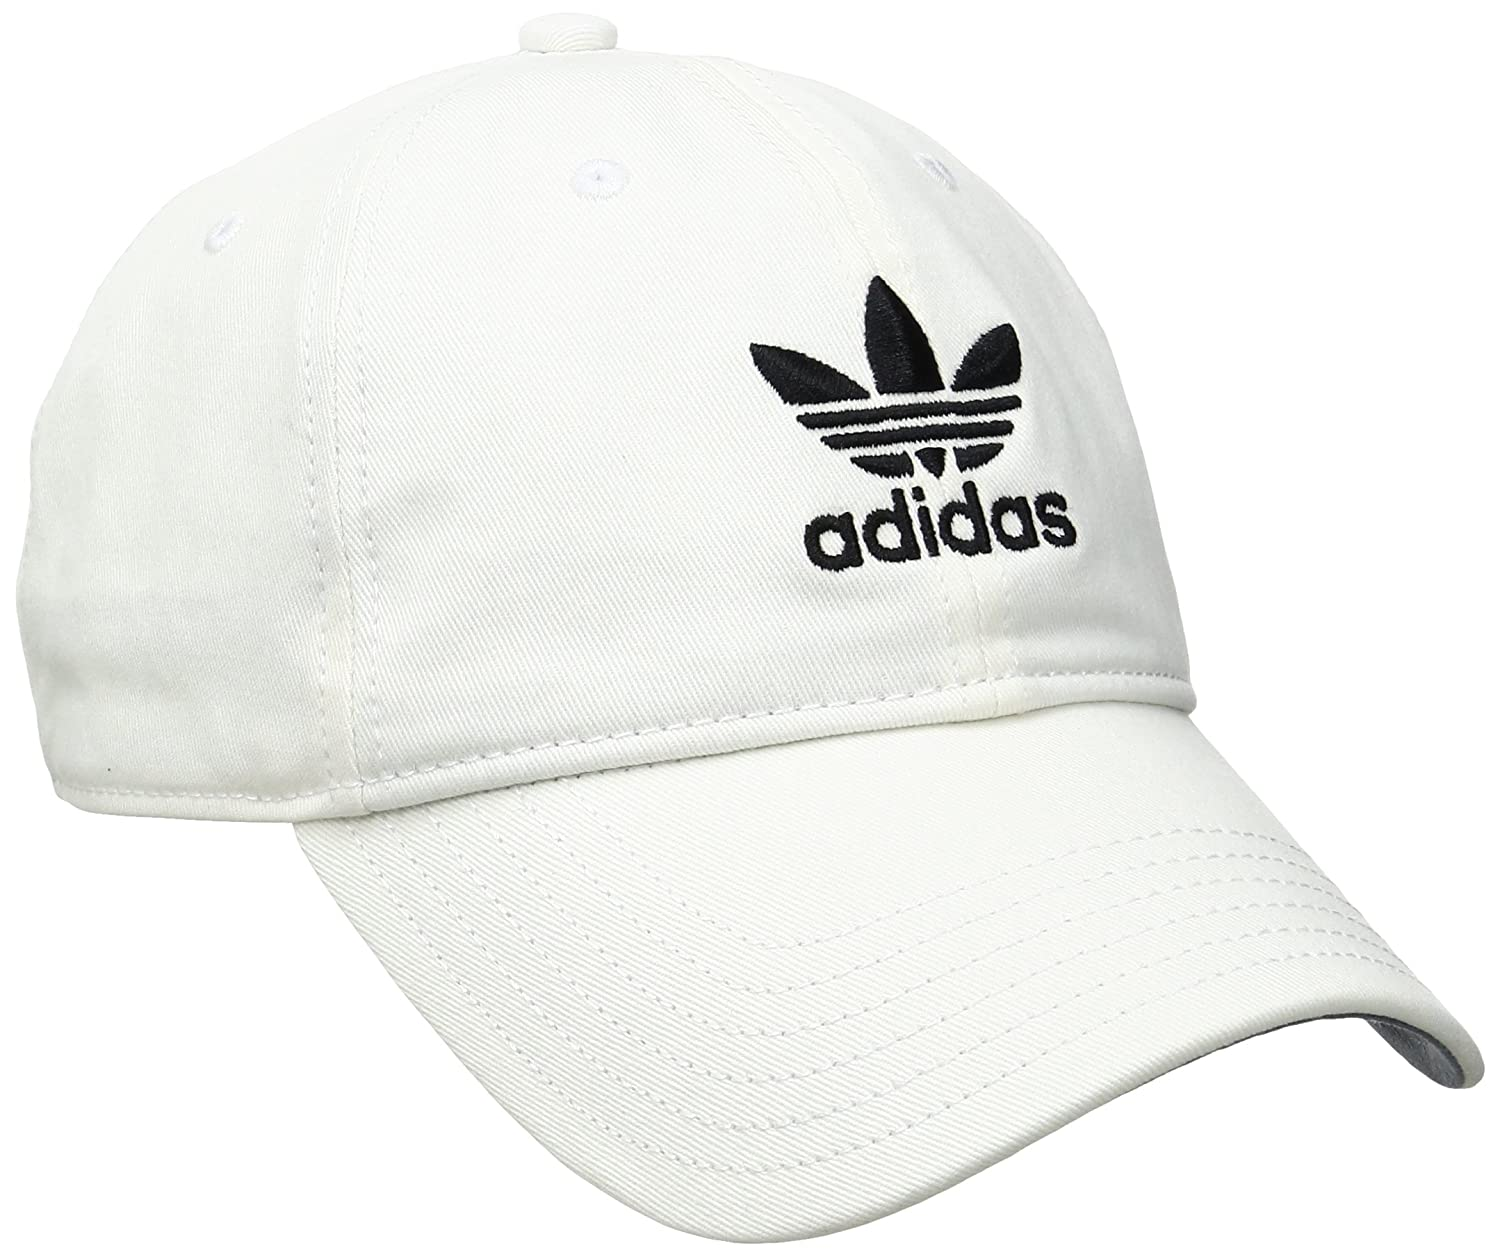 Amazon.com: adidas Mens Originals Relaxed Strapback Cap, White/Black, One Size: Sports & Outdoors